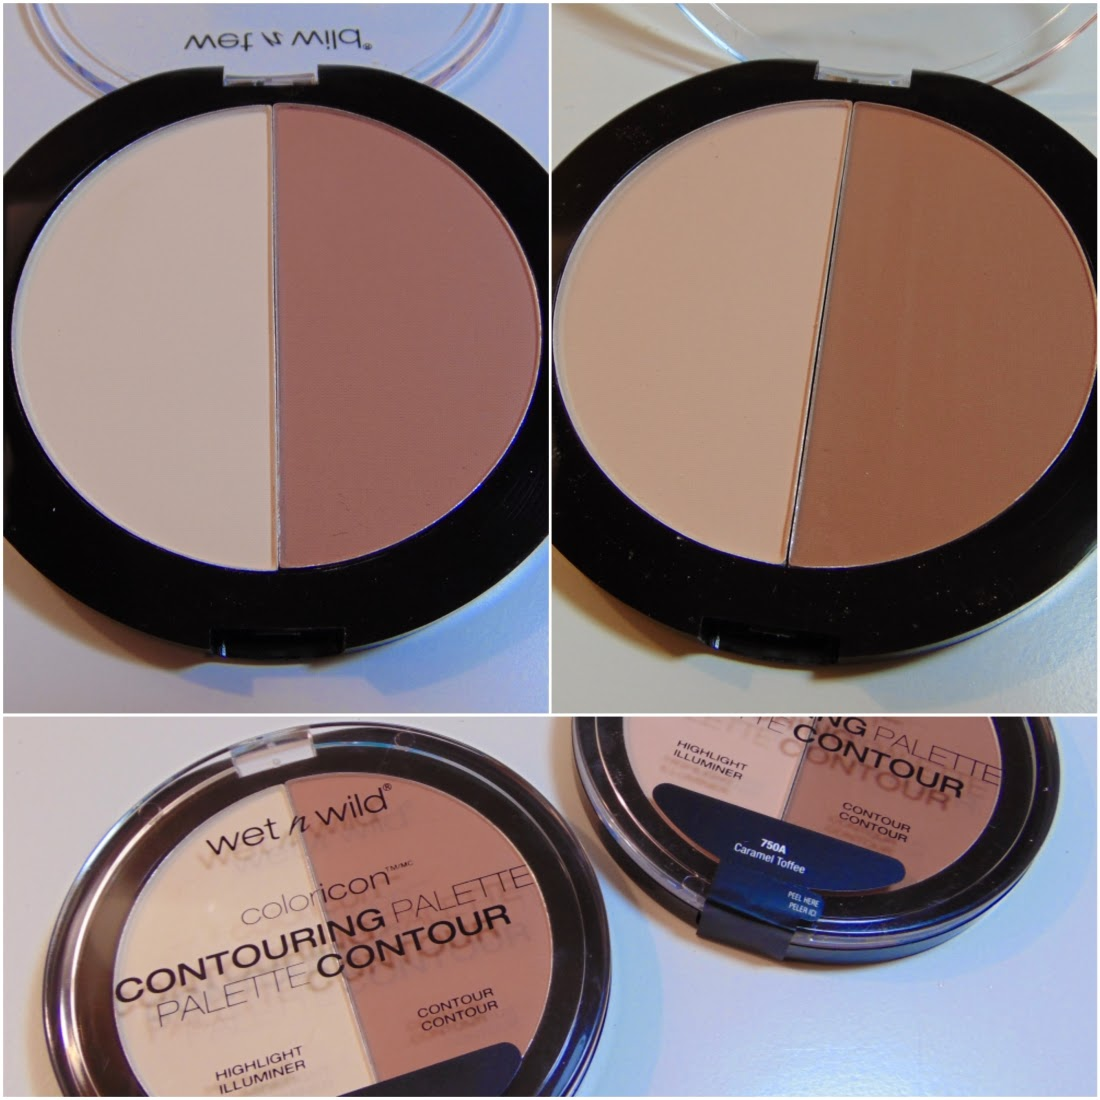 eyeshadow couture review wet n wild coloricon contouring palettes. Black Bedroom Furniture Sets. Home Design Ideas